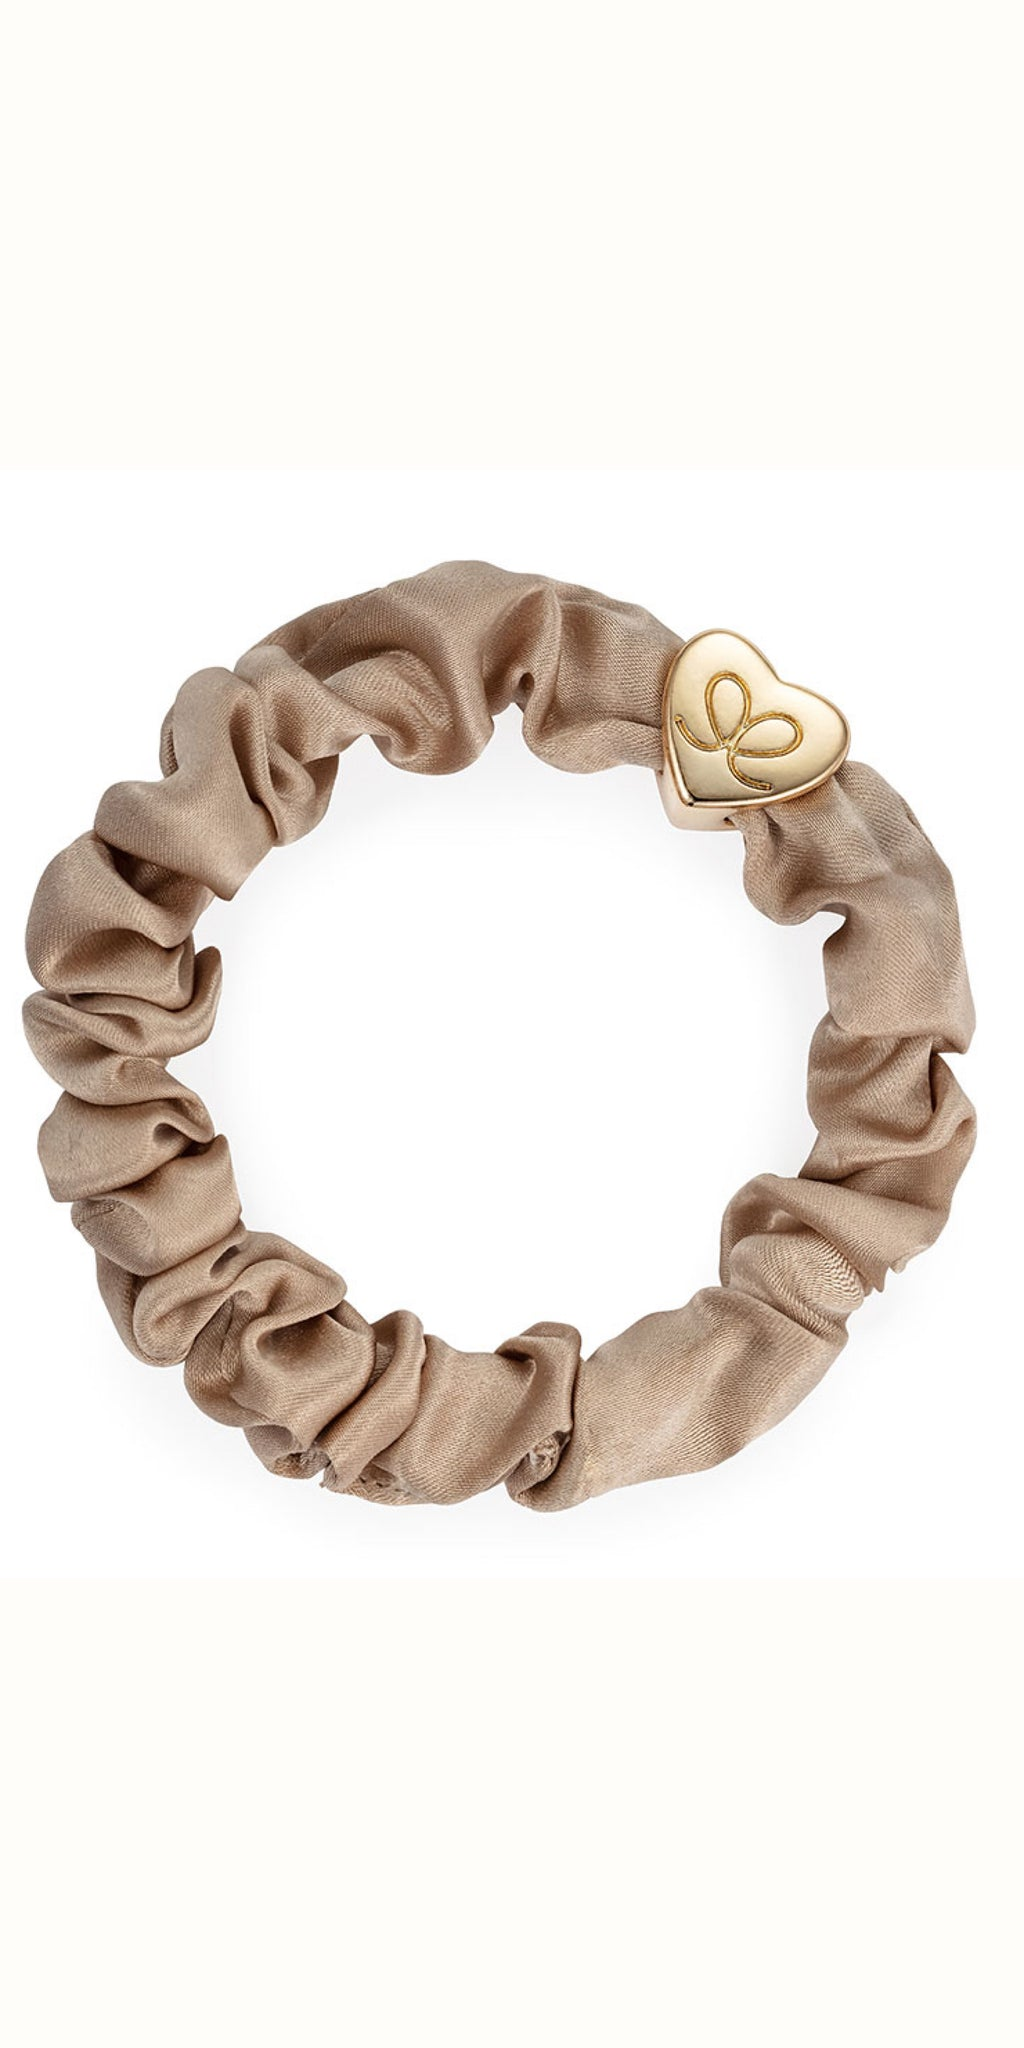 By Eloise Gold Heart on Sand Silk Scrunchie